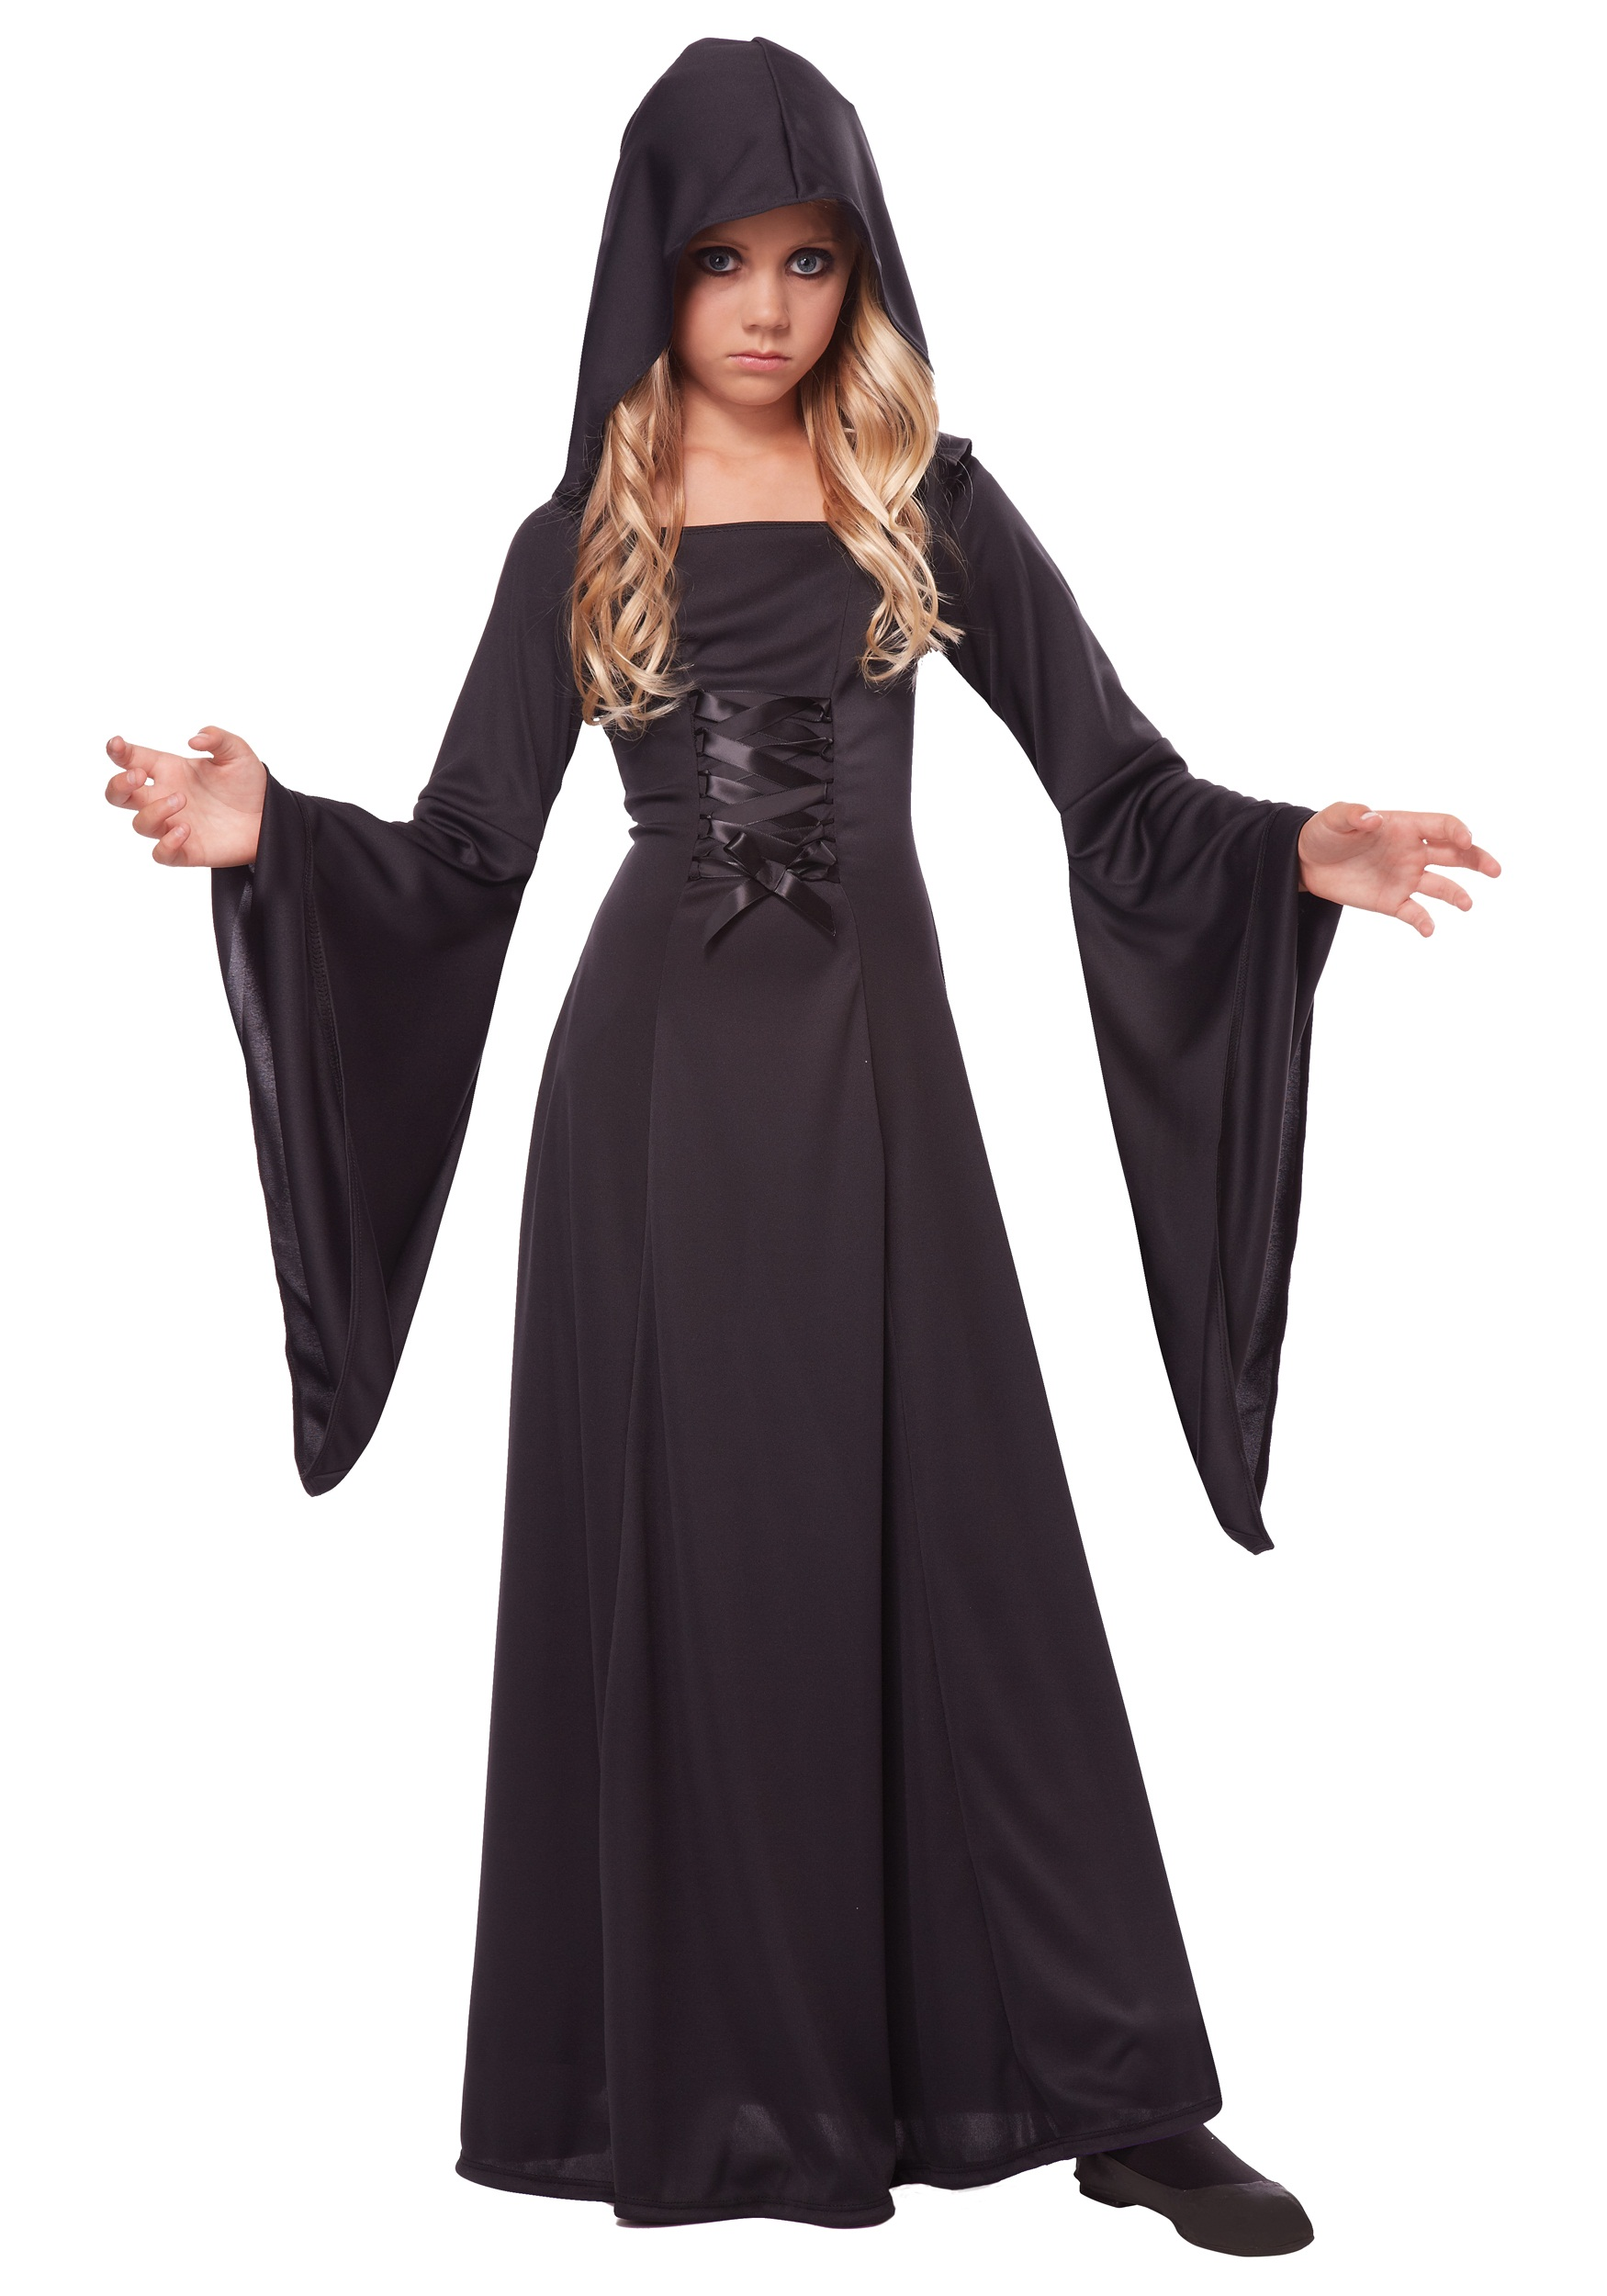 Deluxe Black Hooded Robe for Girls